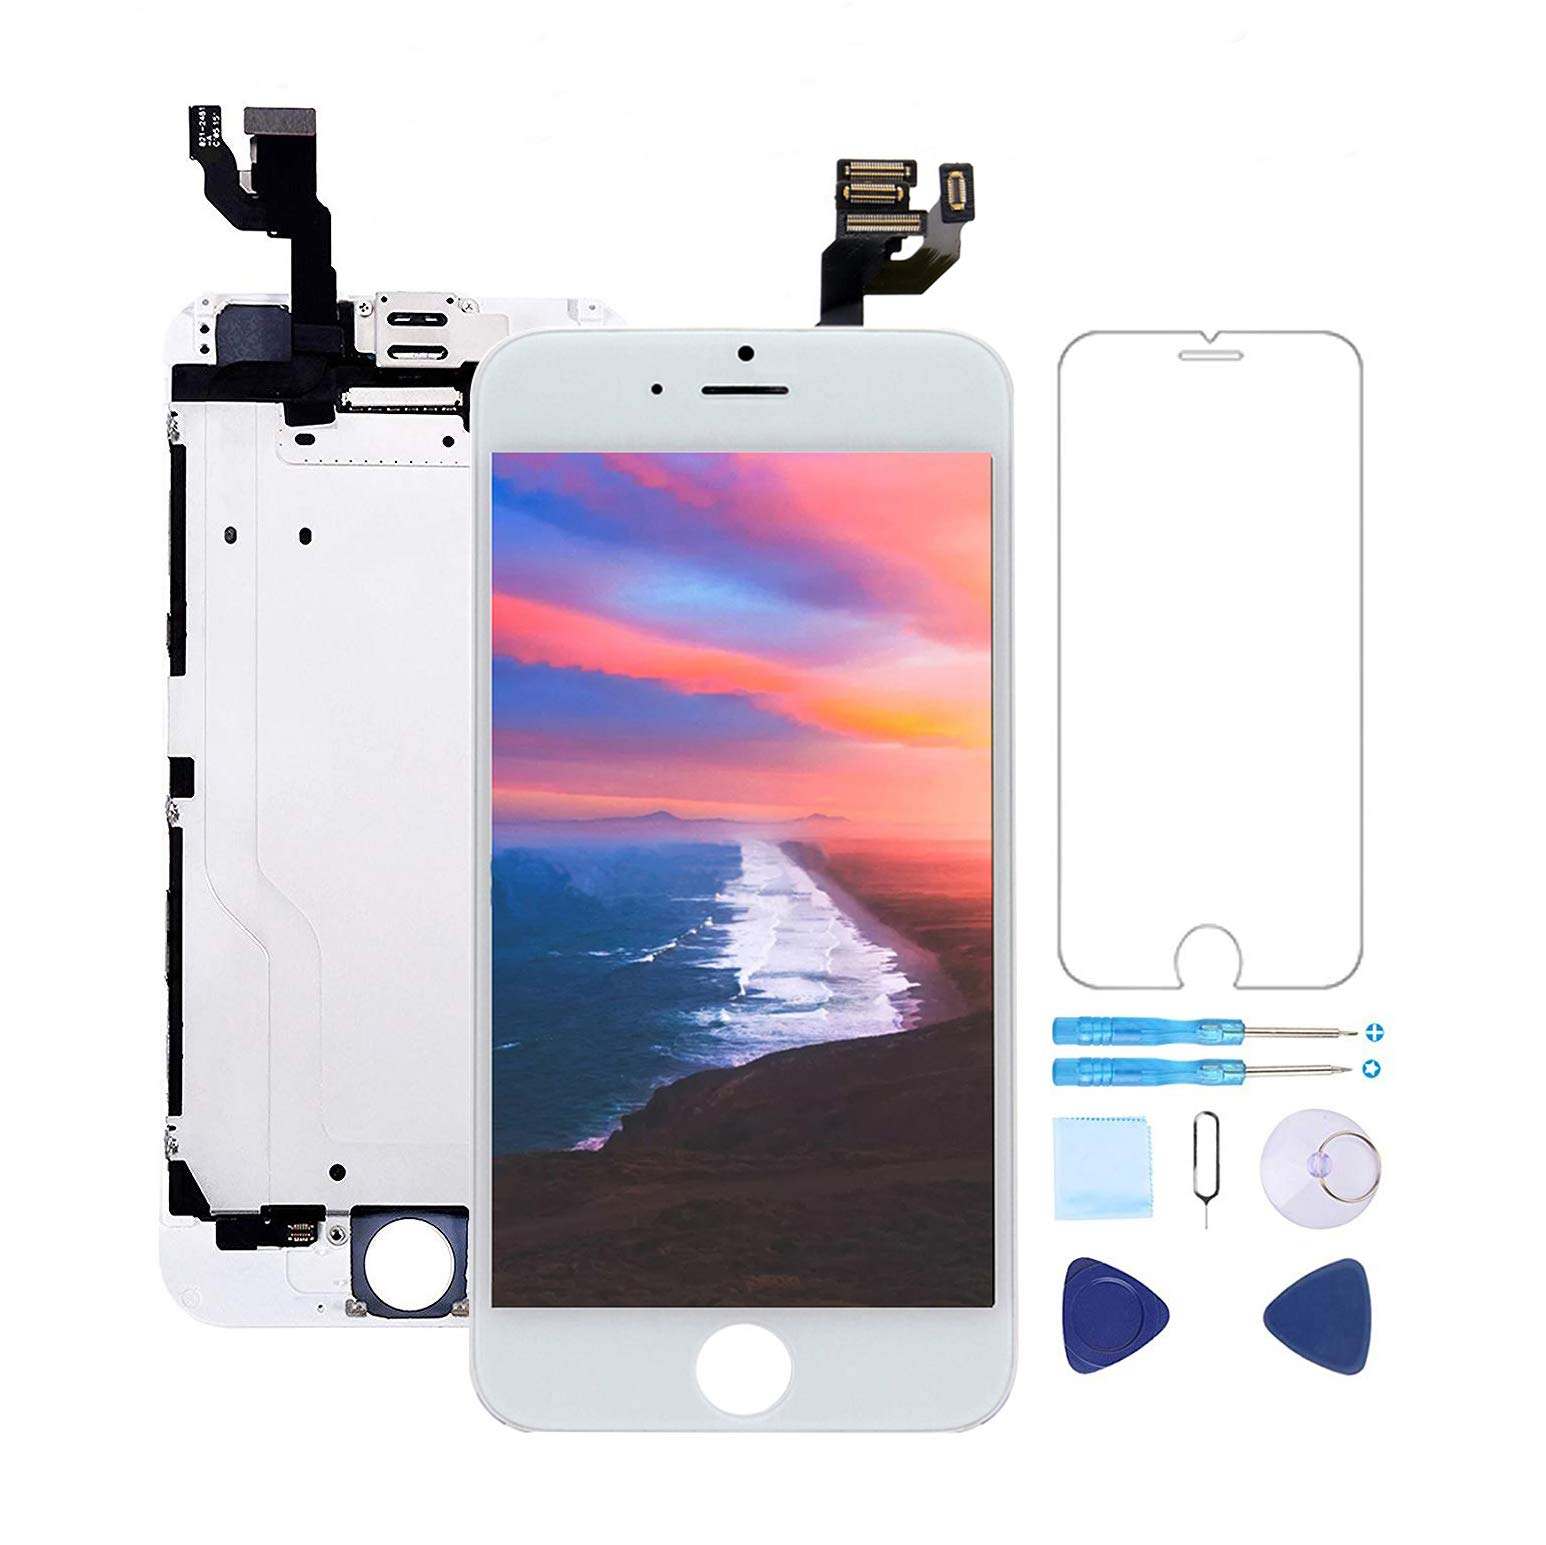 Screen Replacement for iPhone 6 Plus Screen Replacement White 5.5'' LCD Display Touch Digitizer Frame Assembly with Proximity Sensor,Ear Speaker,Front Camera,Screen Protector,Repair Tools kit White by Gucloudy